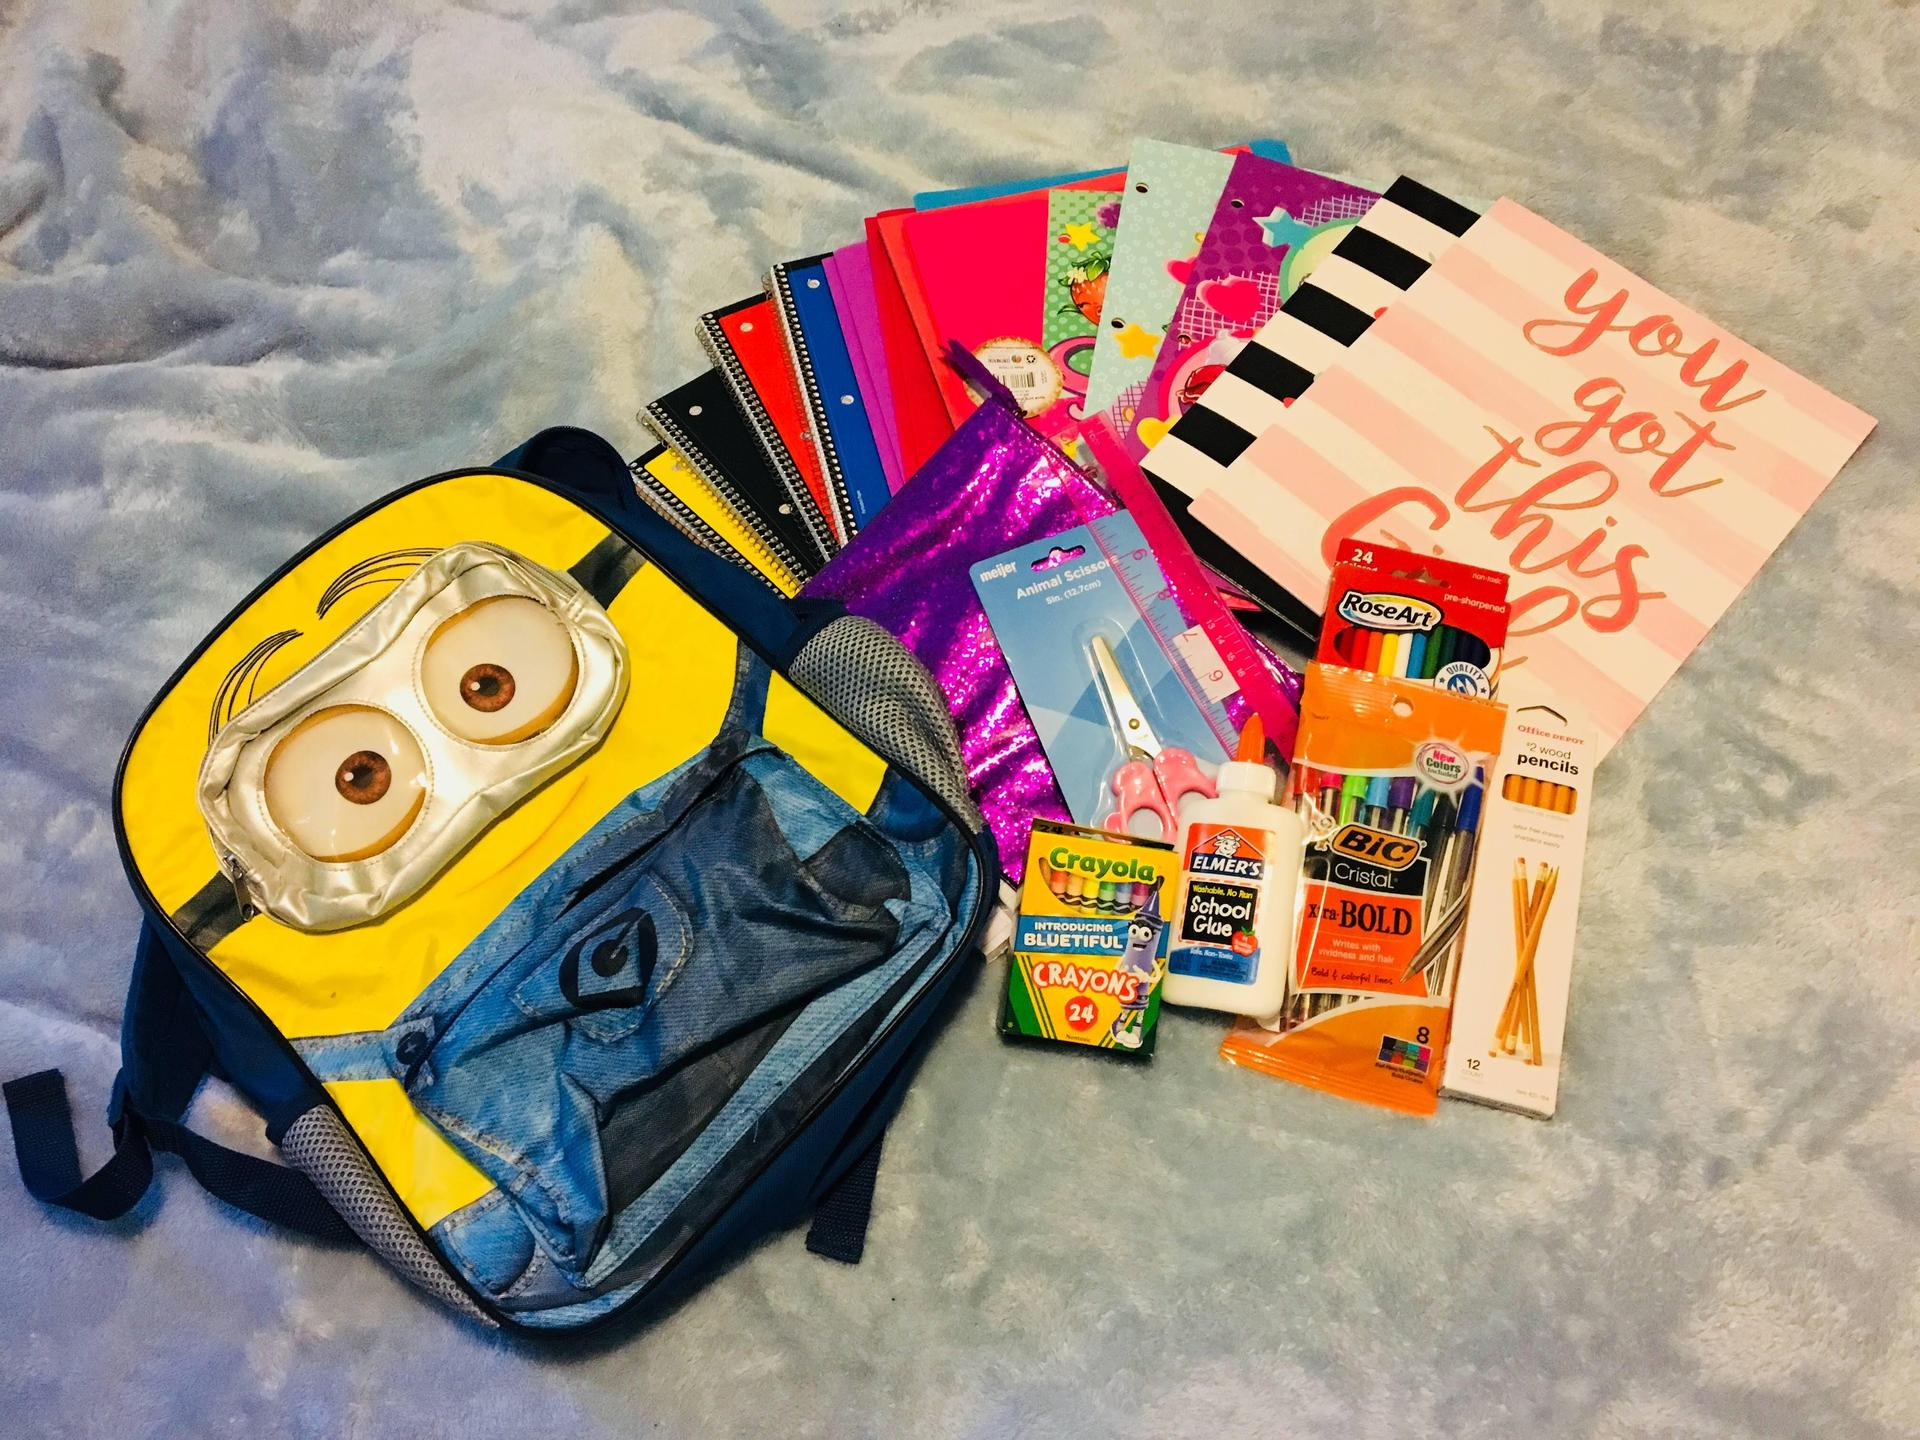 In 2018, Art Club donated funds to buy a local elementary student school supplies that her parents could not afford.